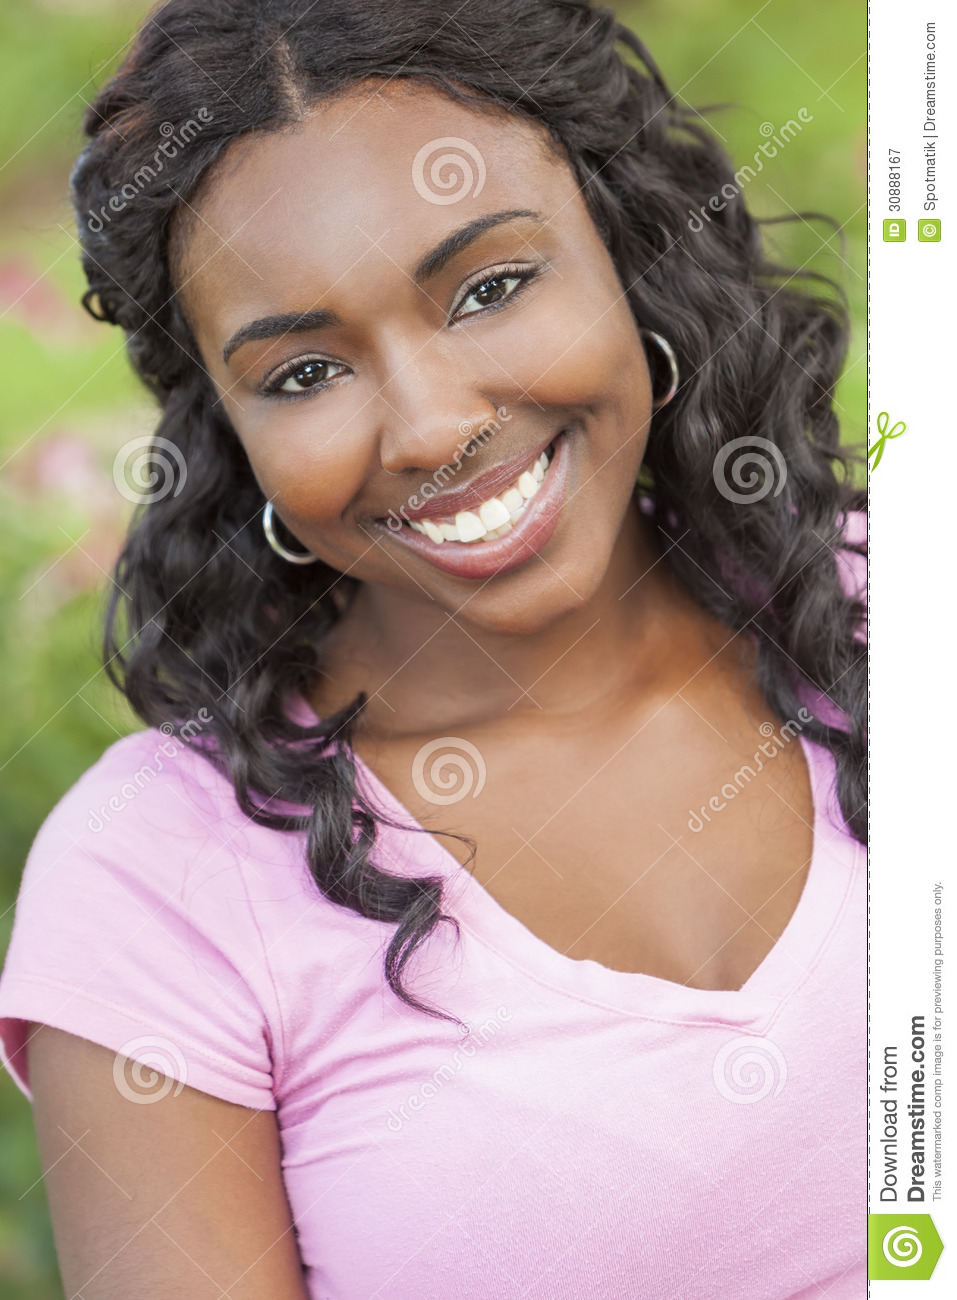 Regret, alt african american teen smiling think, that